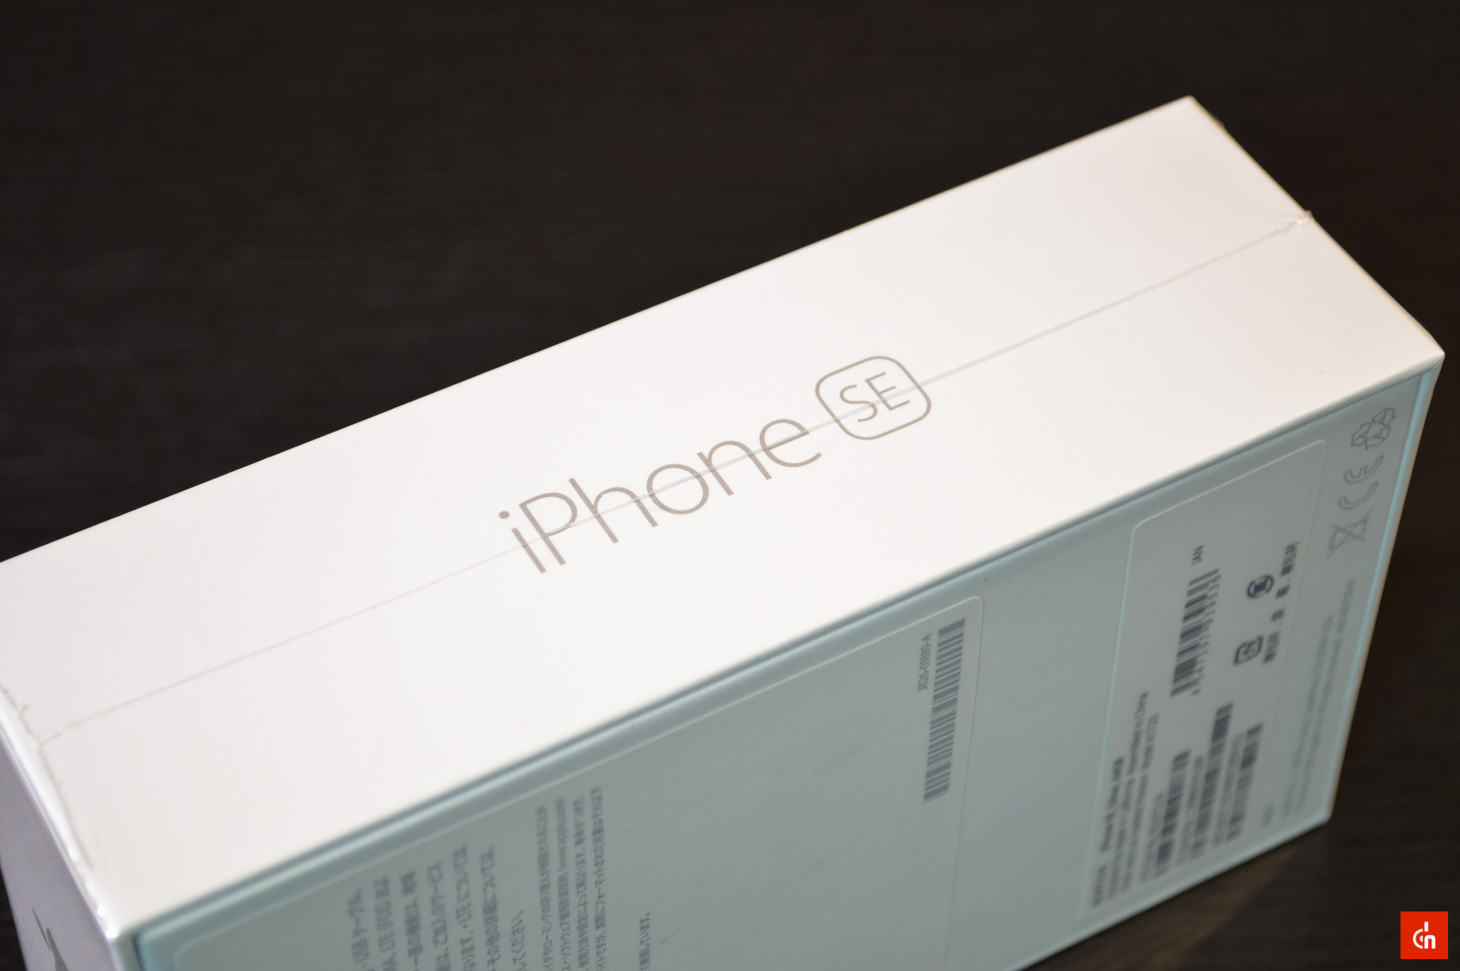 004_20160422_iphone-se-review